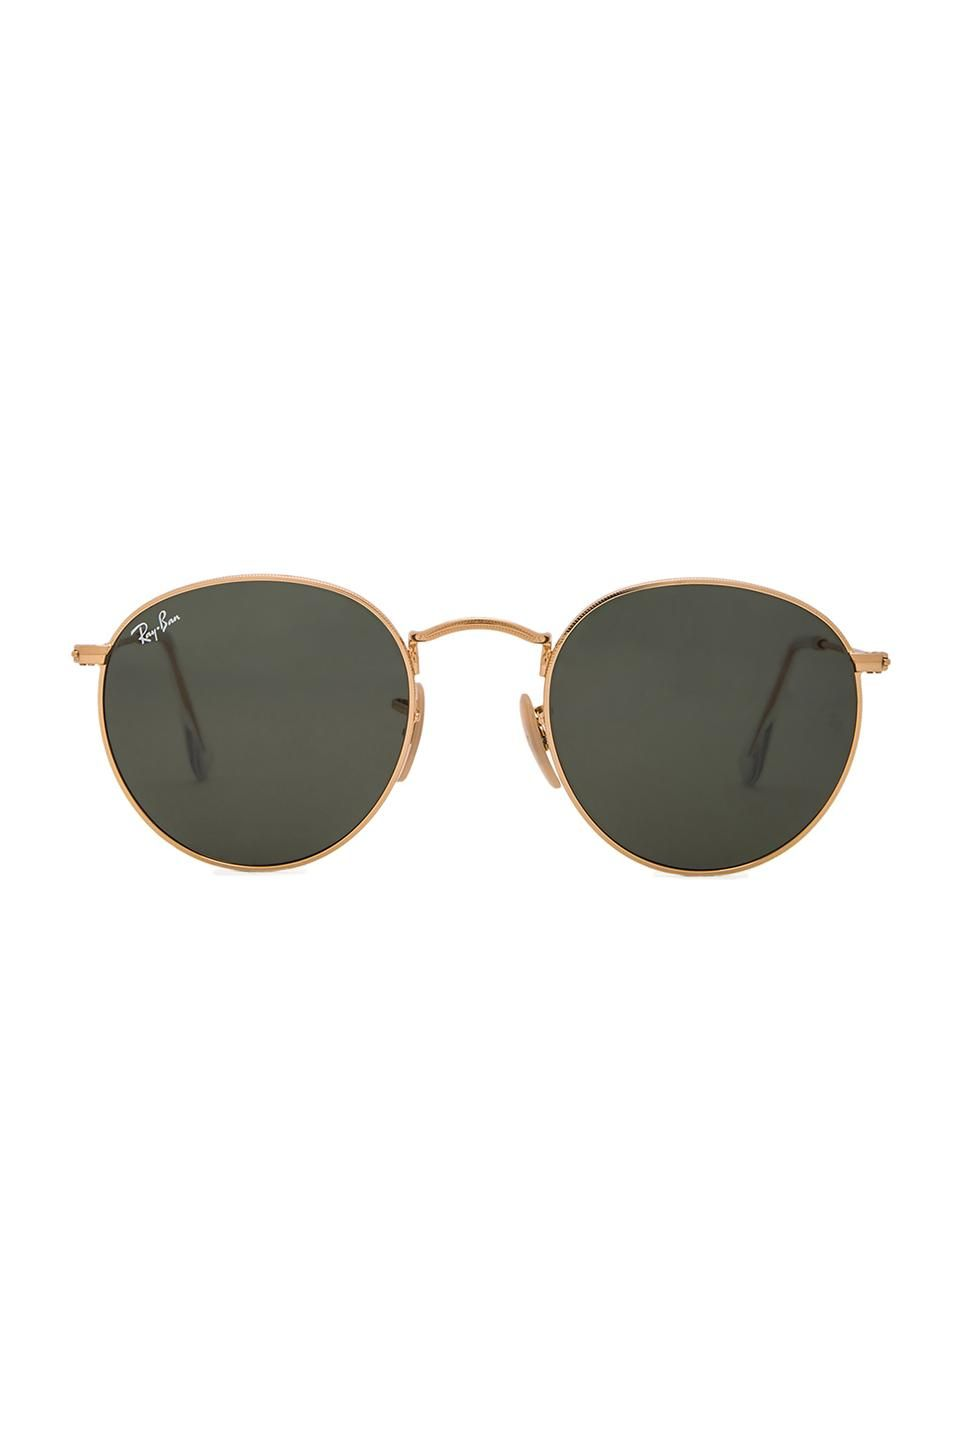 1344af400e1 Ray-Ban Round Metal in Green Classic